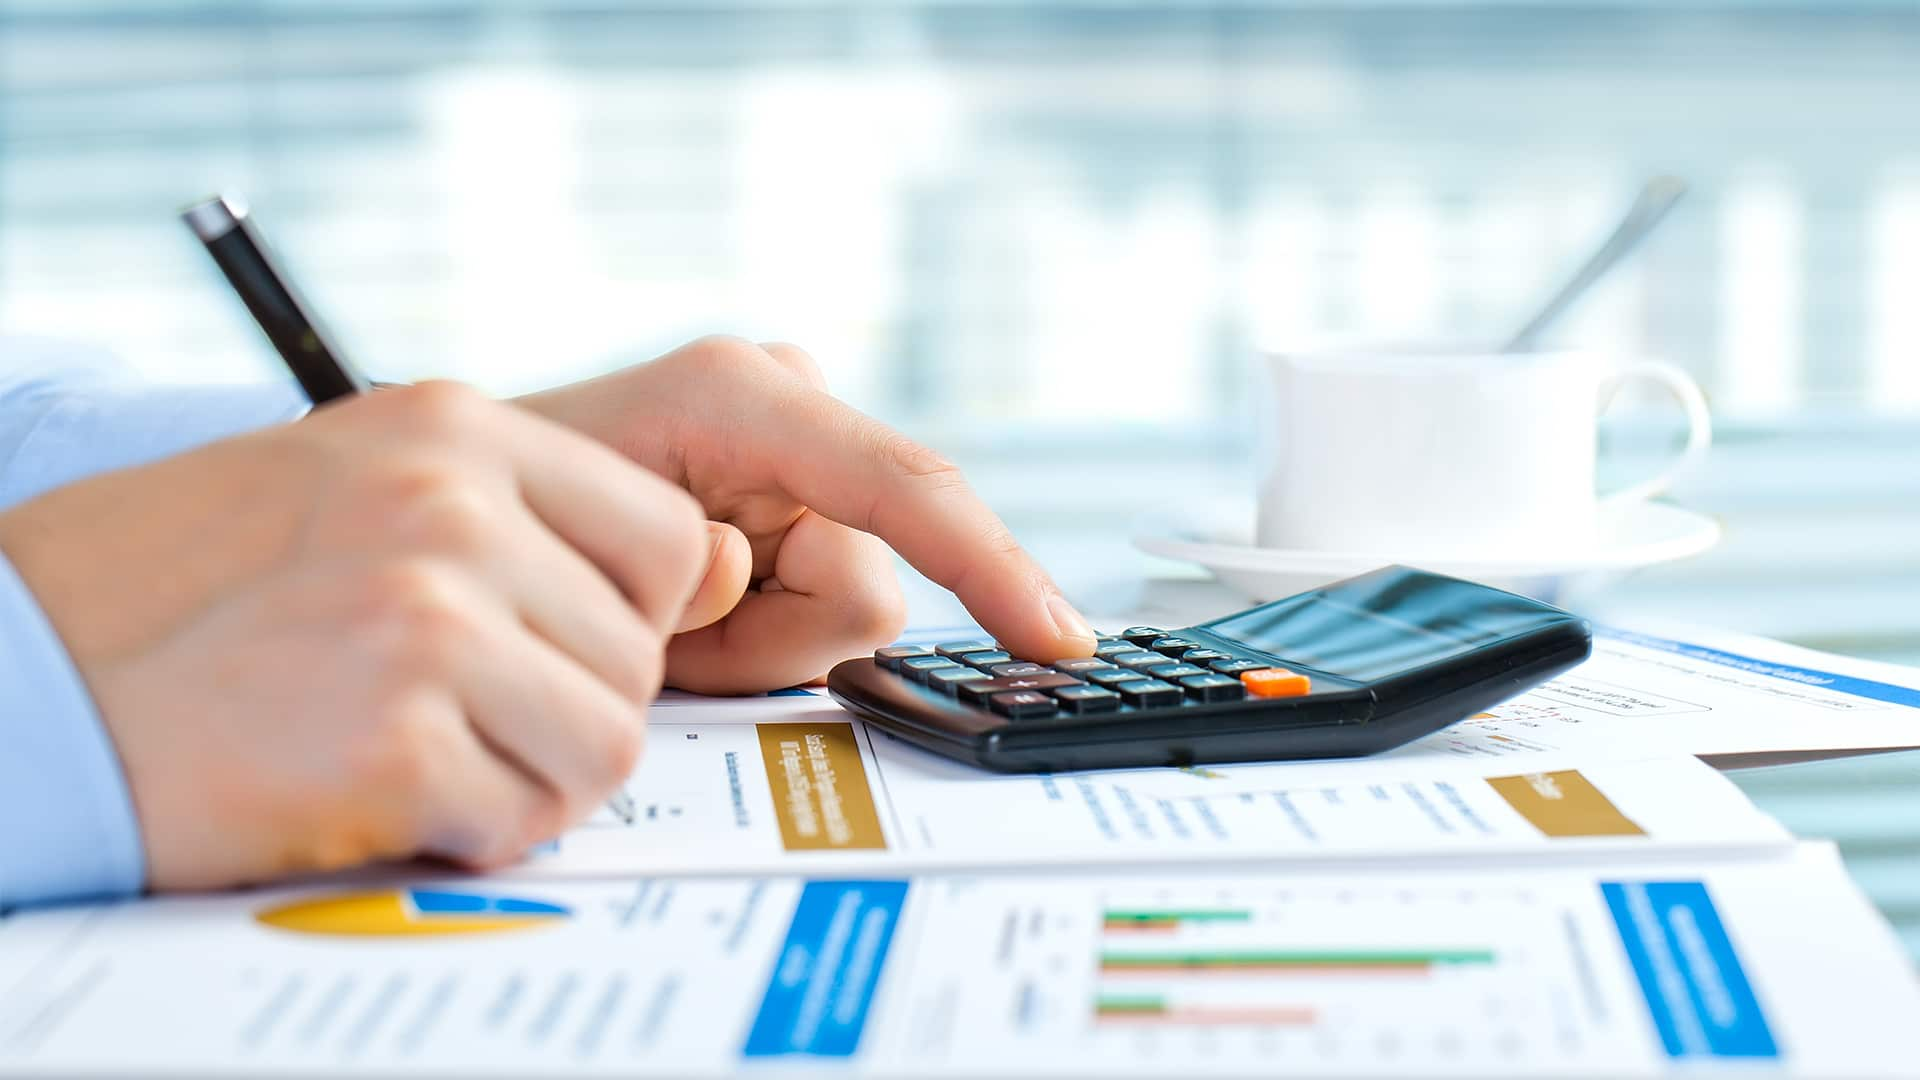 MUC provide best Accounts & Fiance Services in Lahore,we provide Accounts & Fiance services.